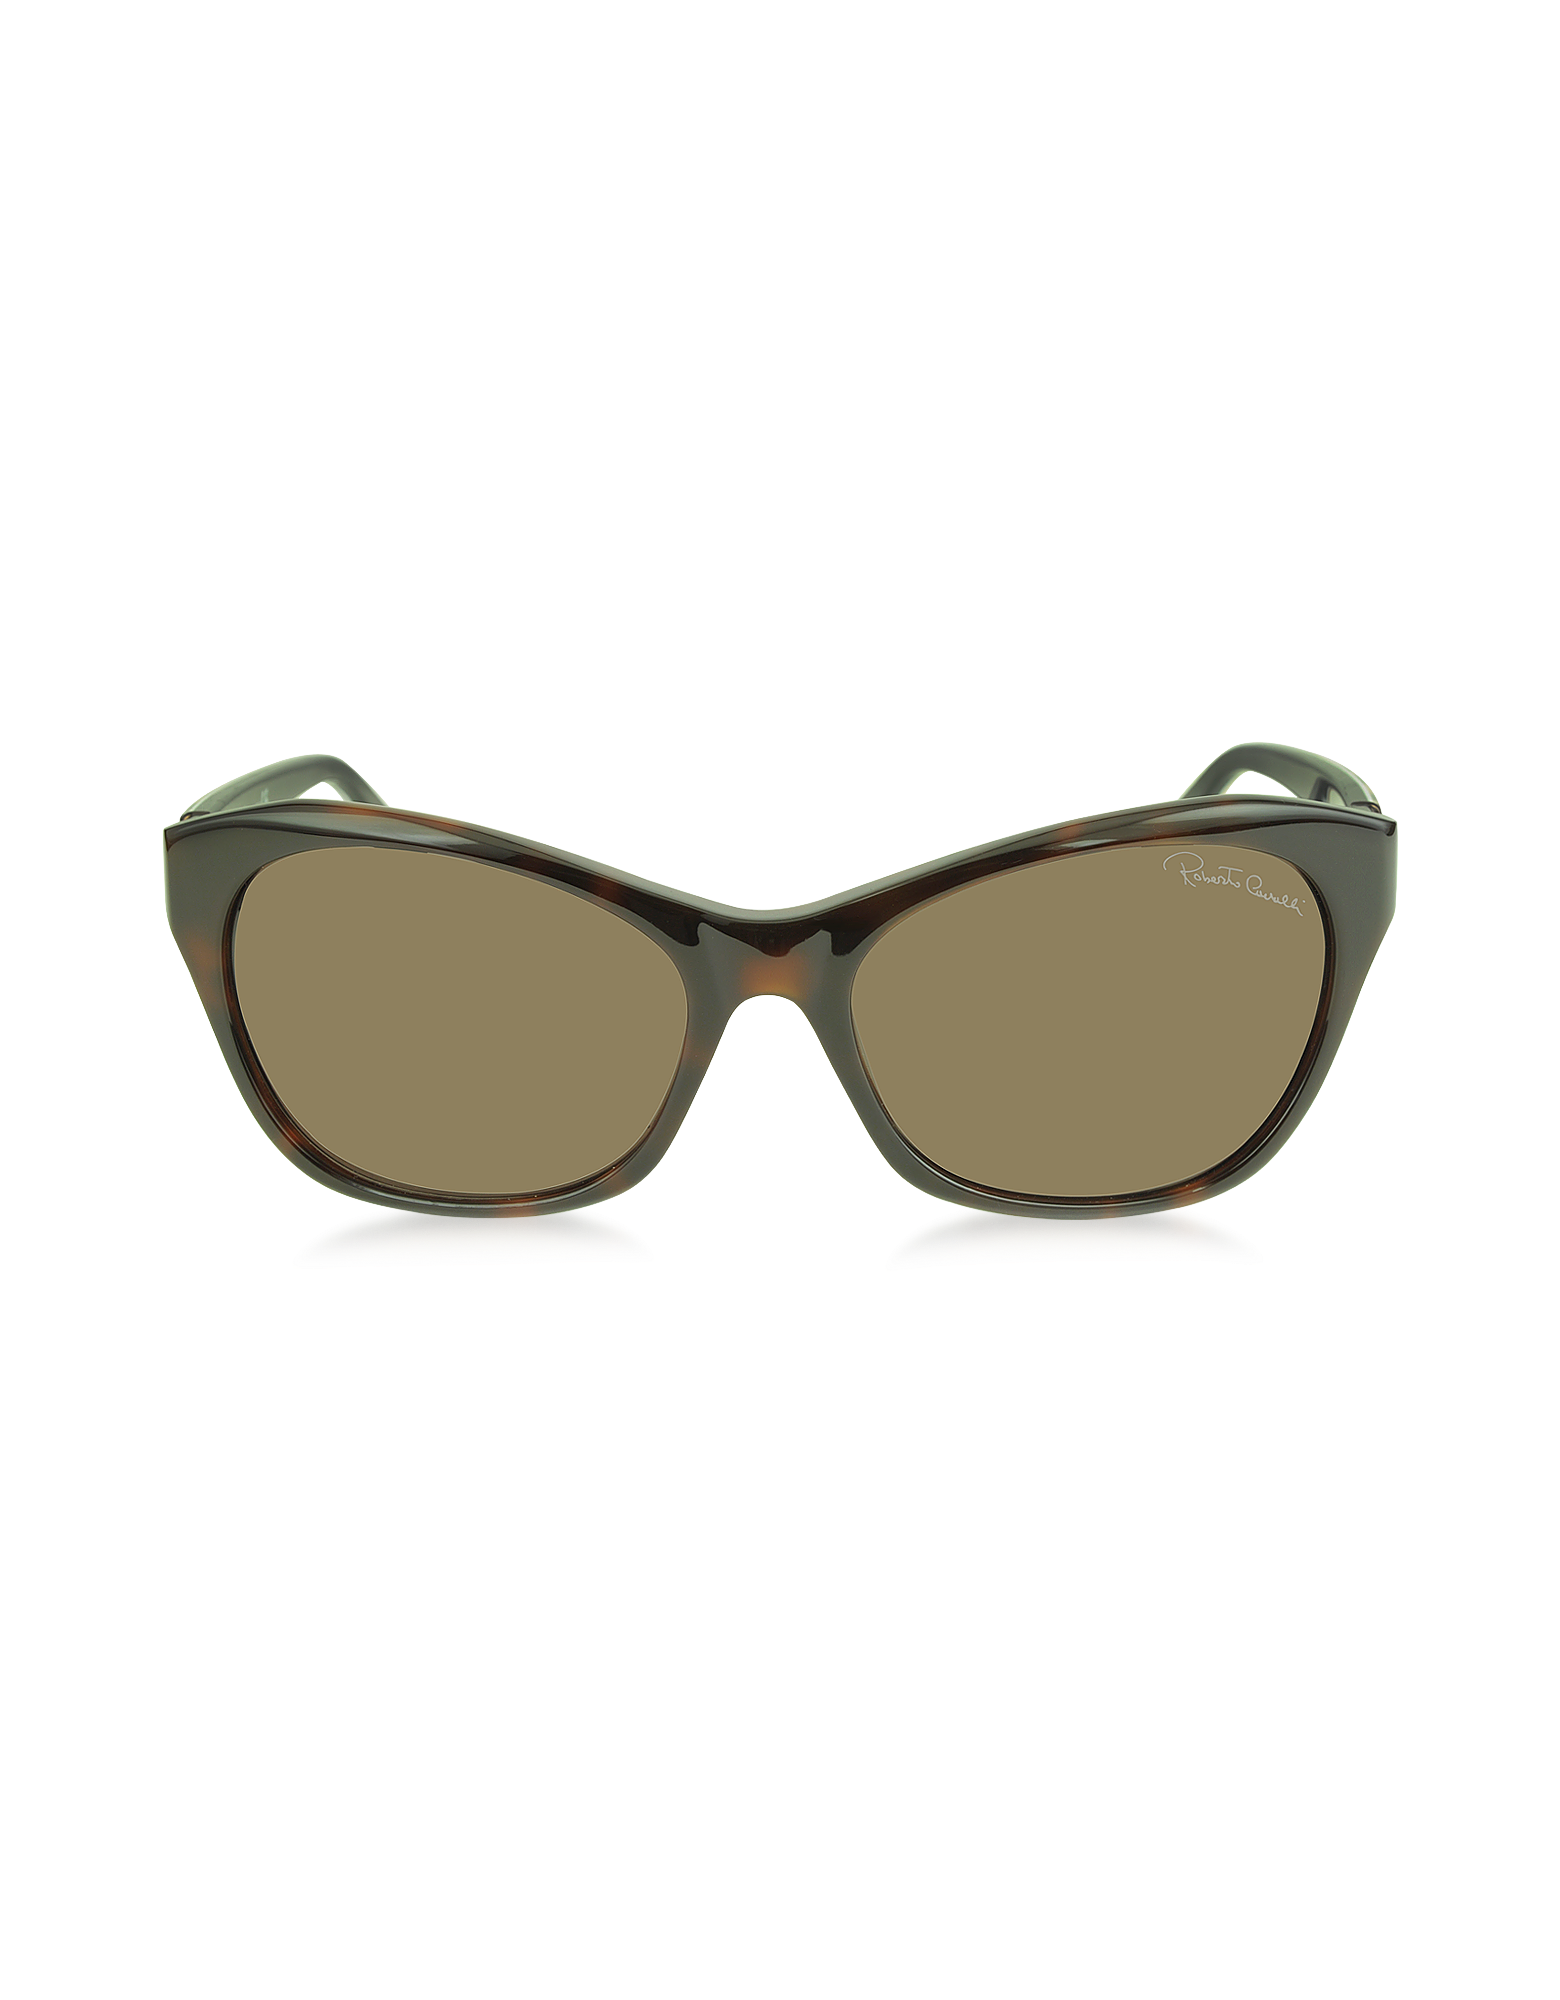 Image of Asdu 730S 52F Havana Leopard Brown Sunglasses